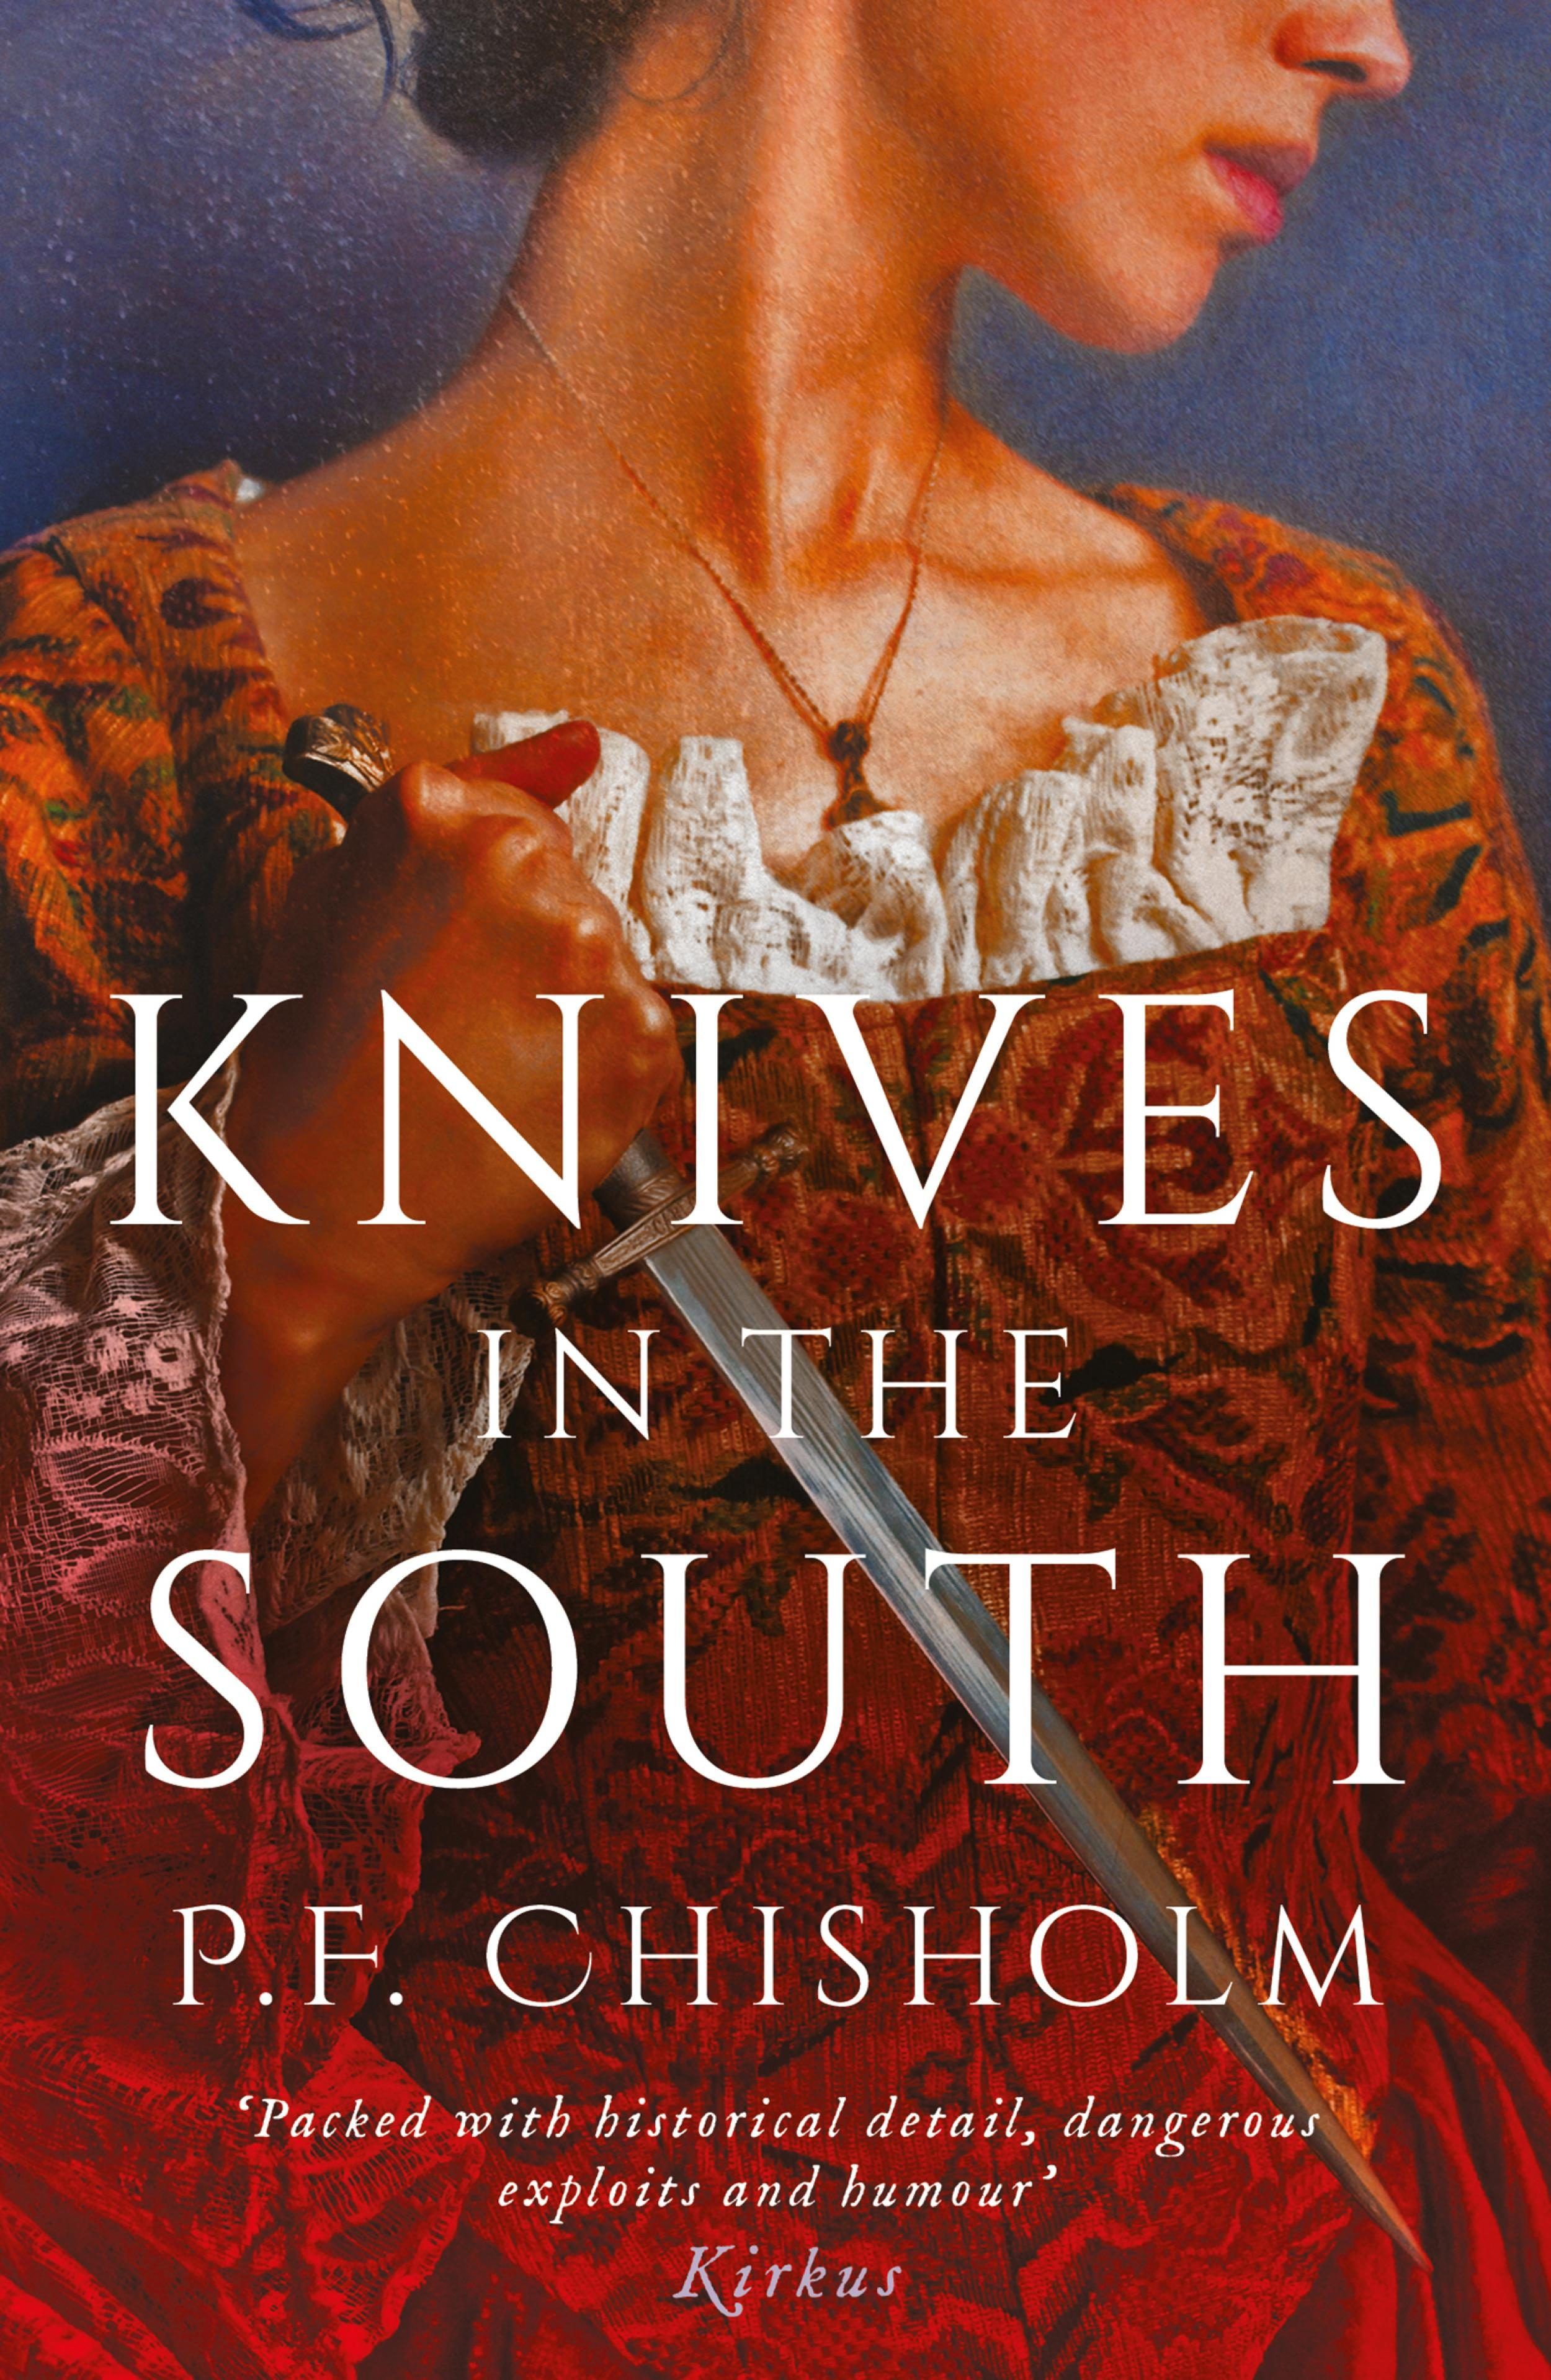 knives in the south (ebook)-p.f. chisholm-9781786696175